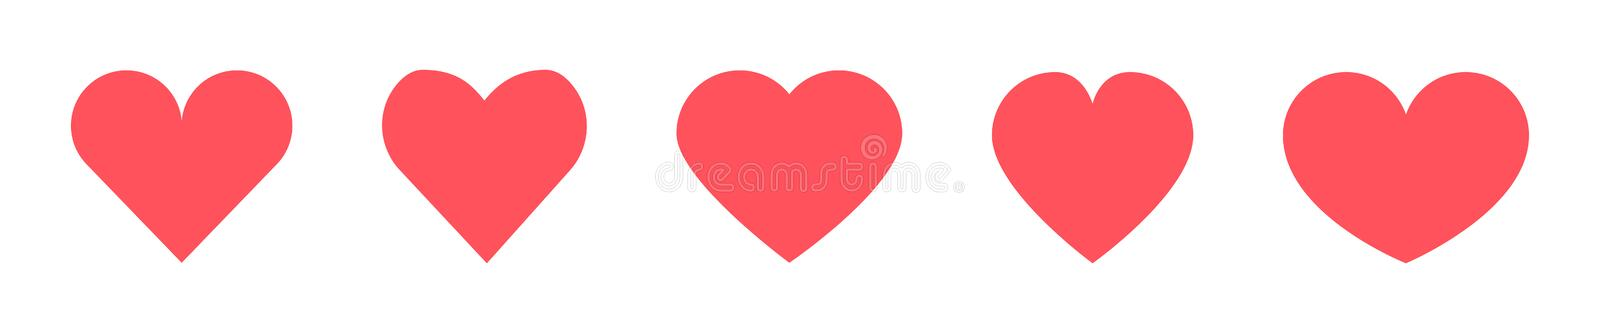 Red Heart vector icons set on blanck background. Hearts icon stock illustration